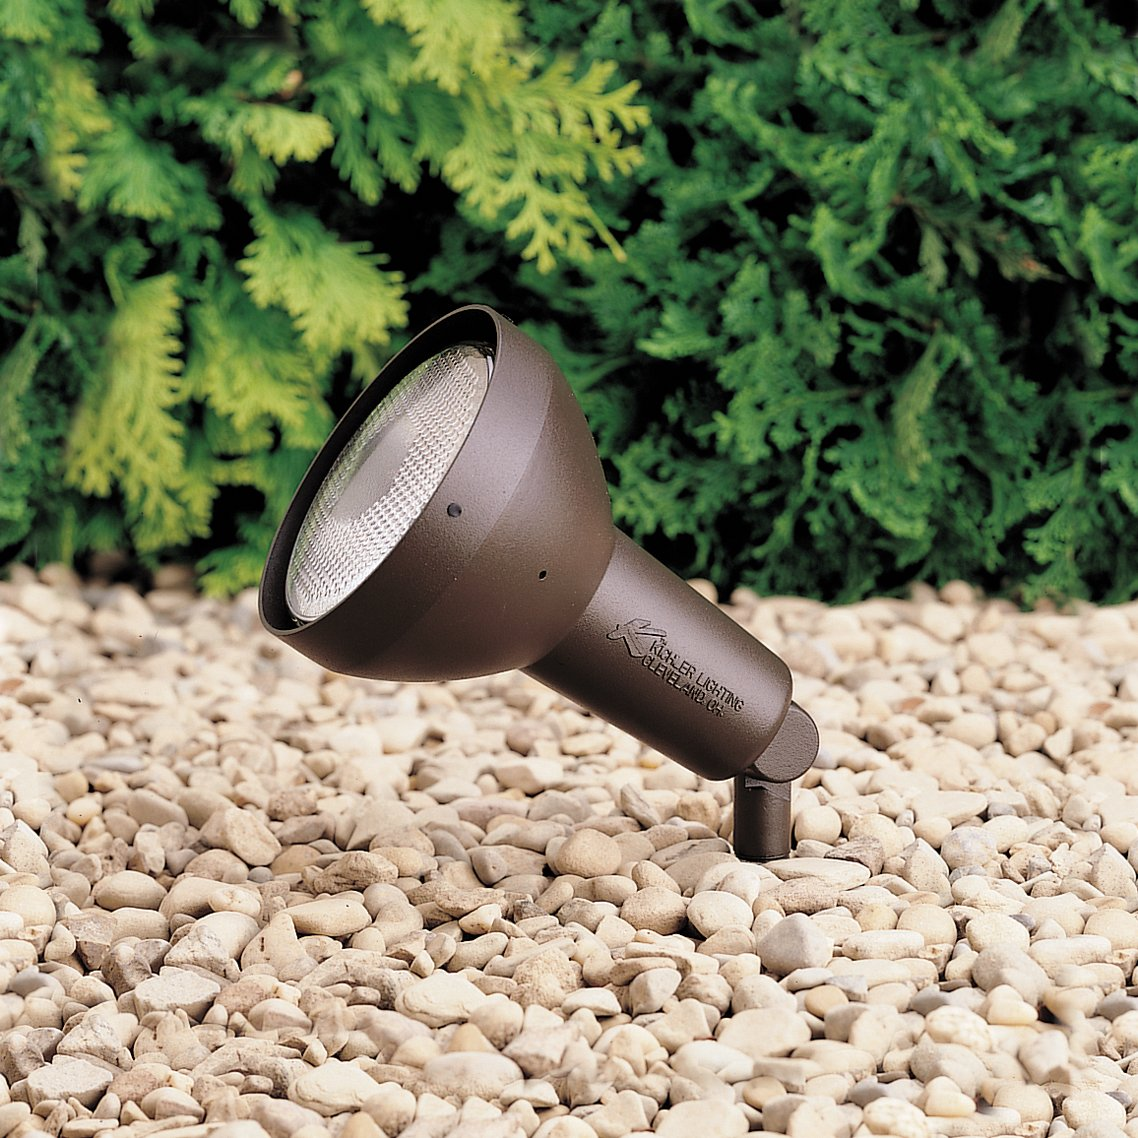 Kichler 15250azt hid high intensity discharge accent 1 light 120v kichler 15250azt hid high intensity discharge accent 1 light 120v textured architectural bronze landscape spotlights amazon aloadofball